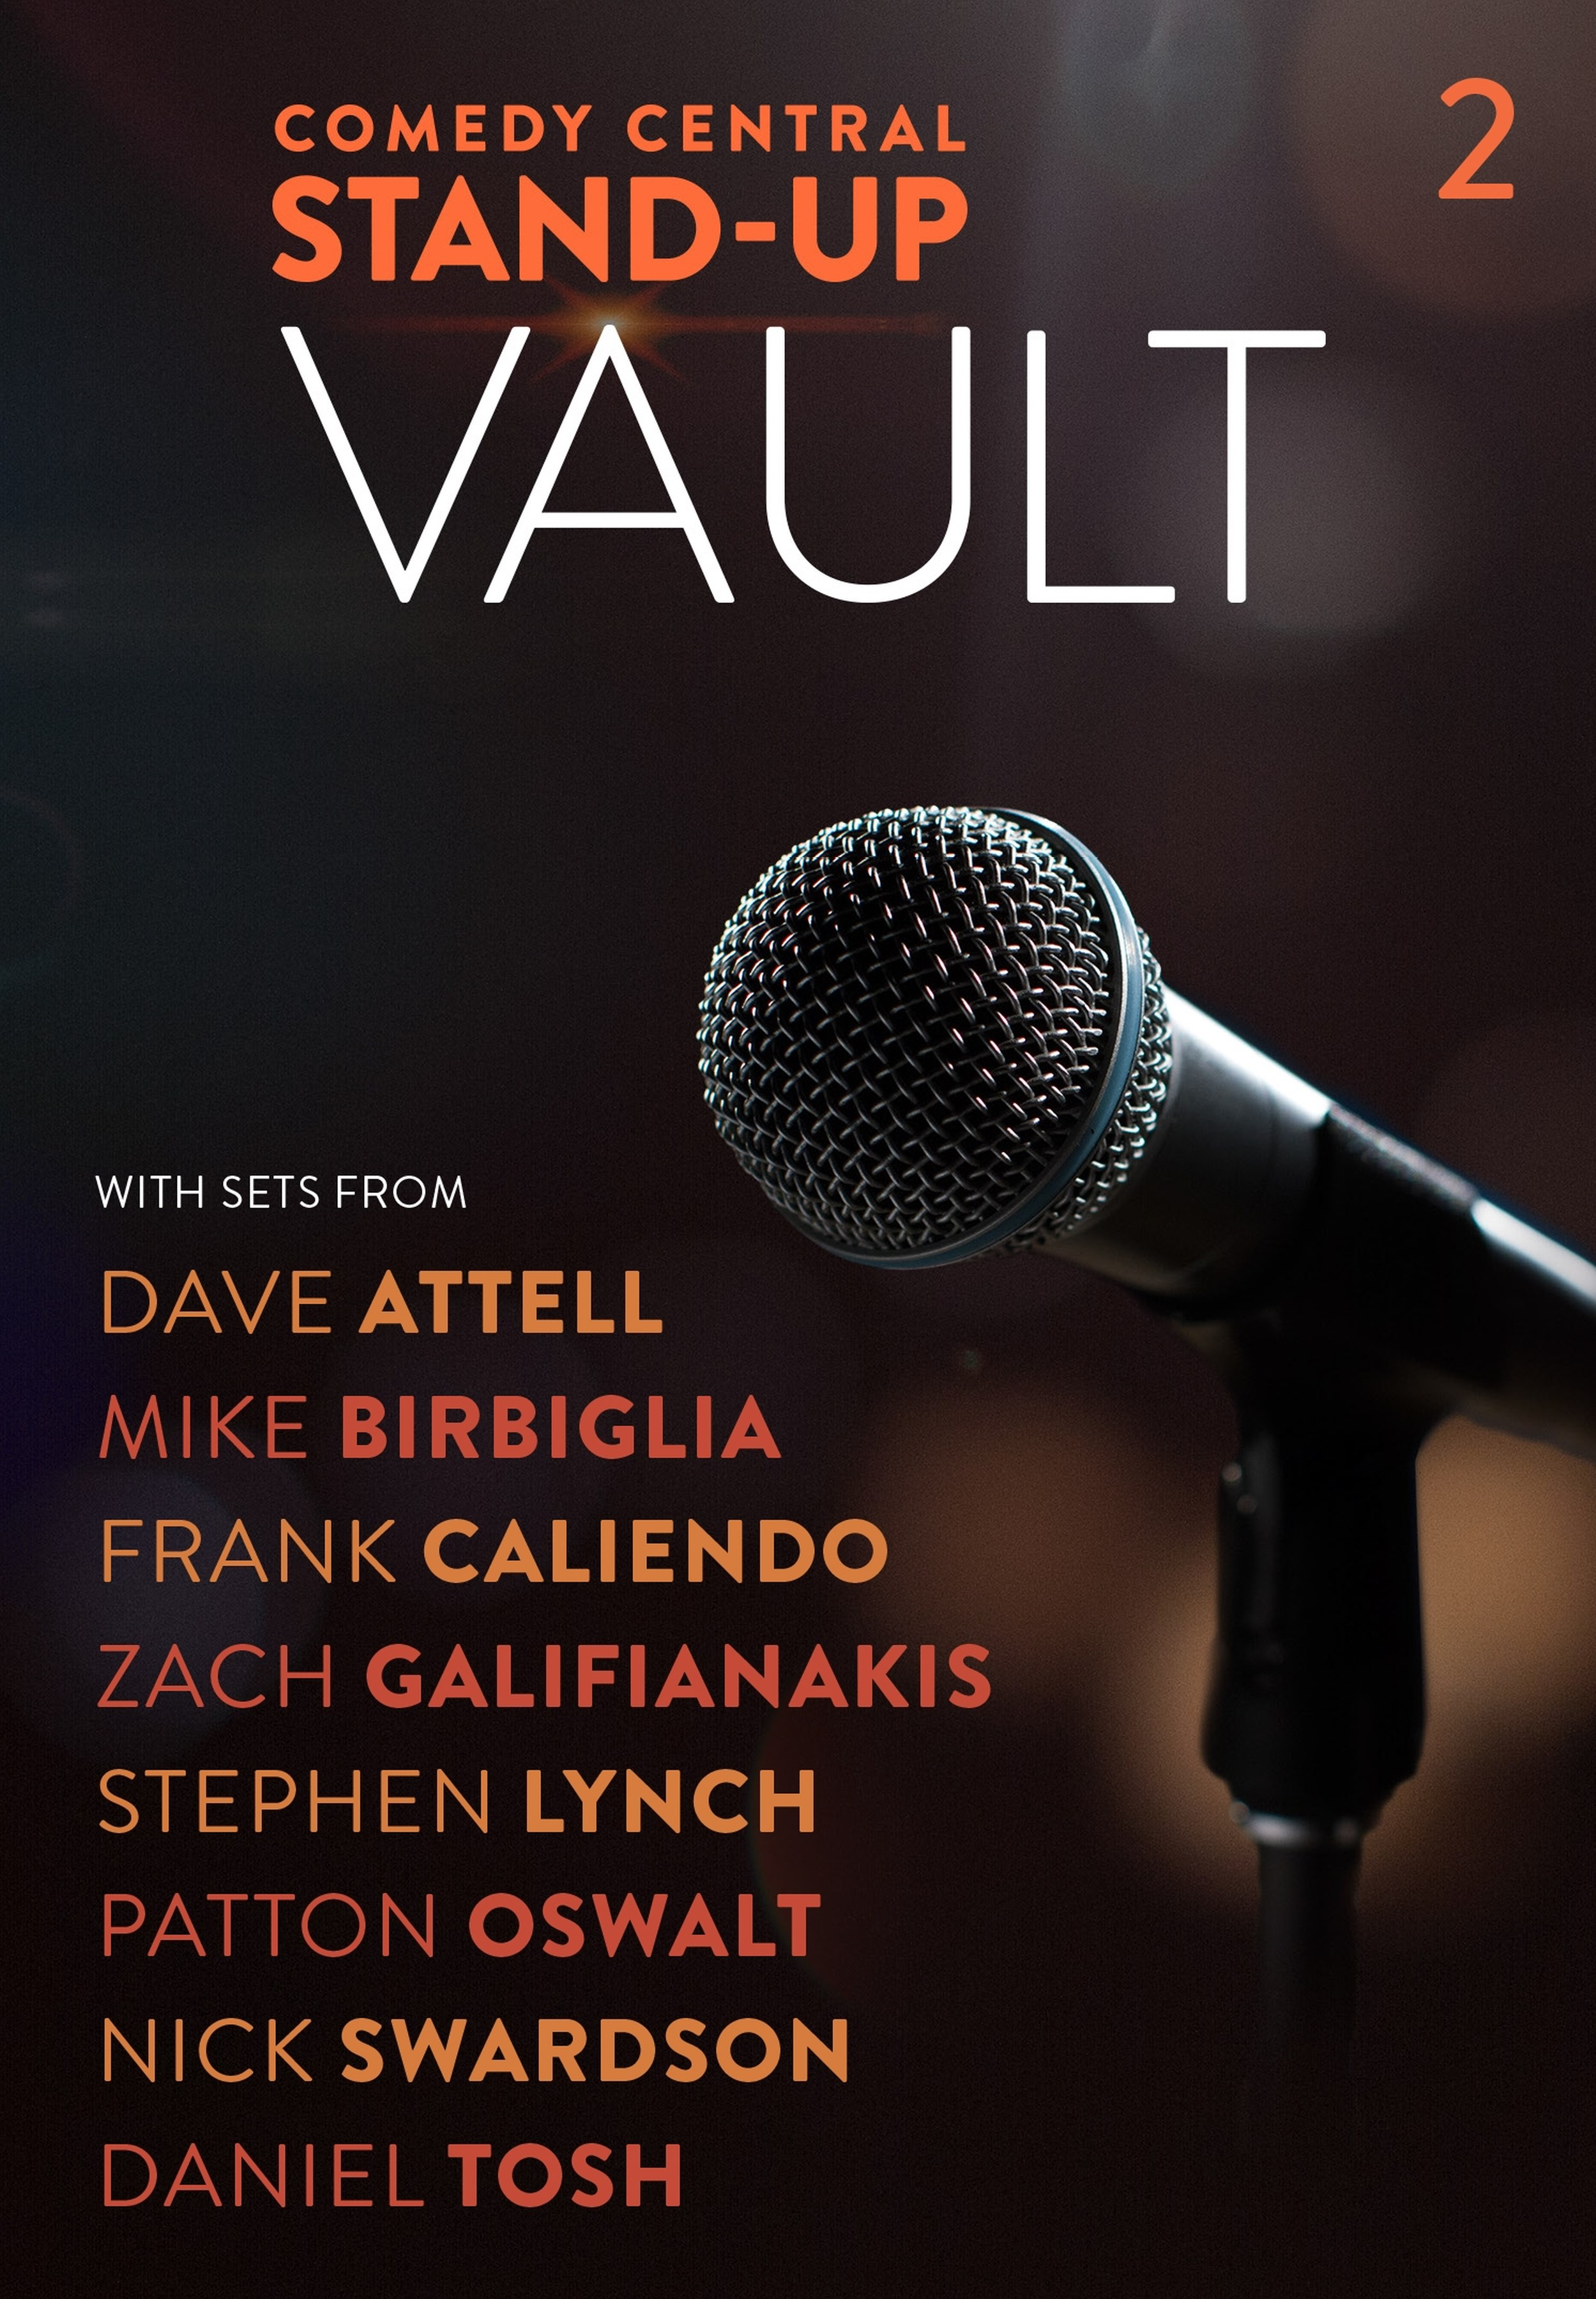 Comedy Central Stand-Up Vault 2